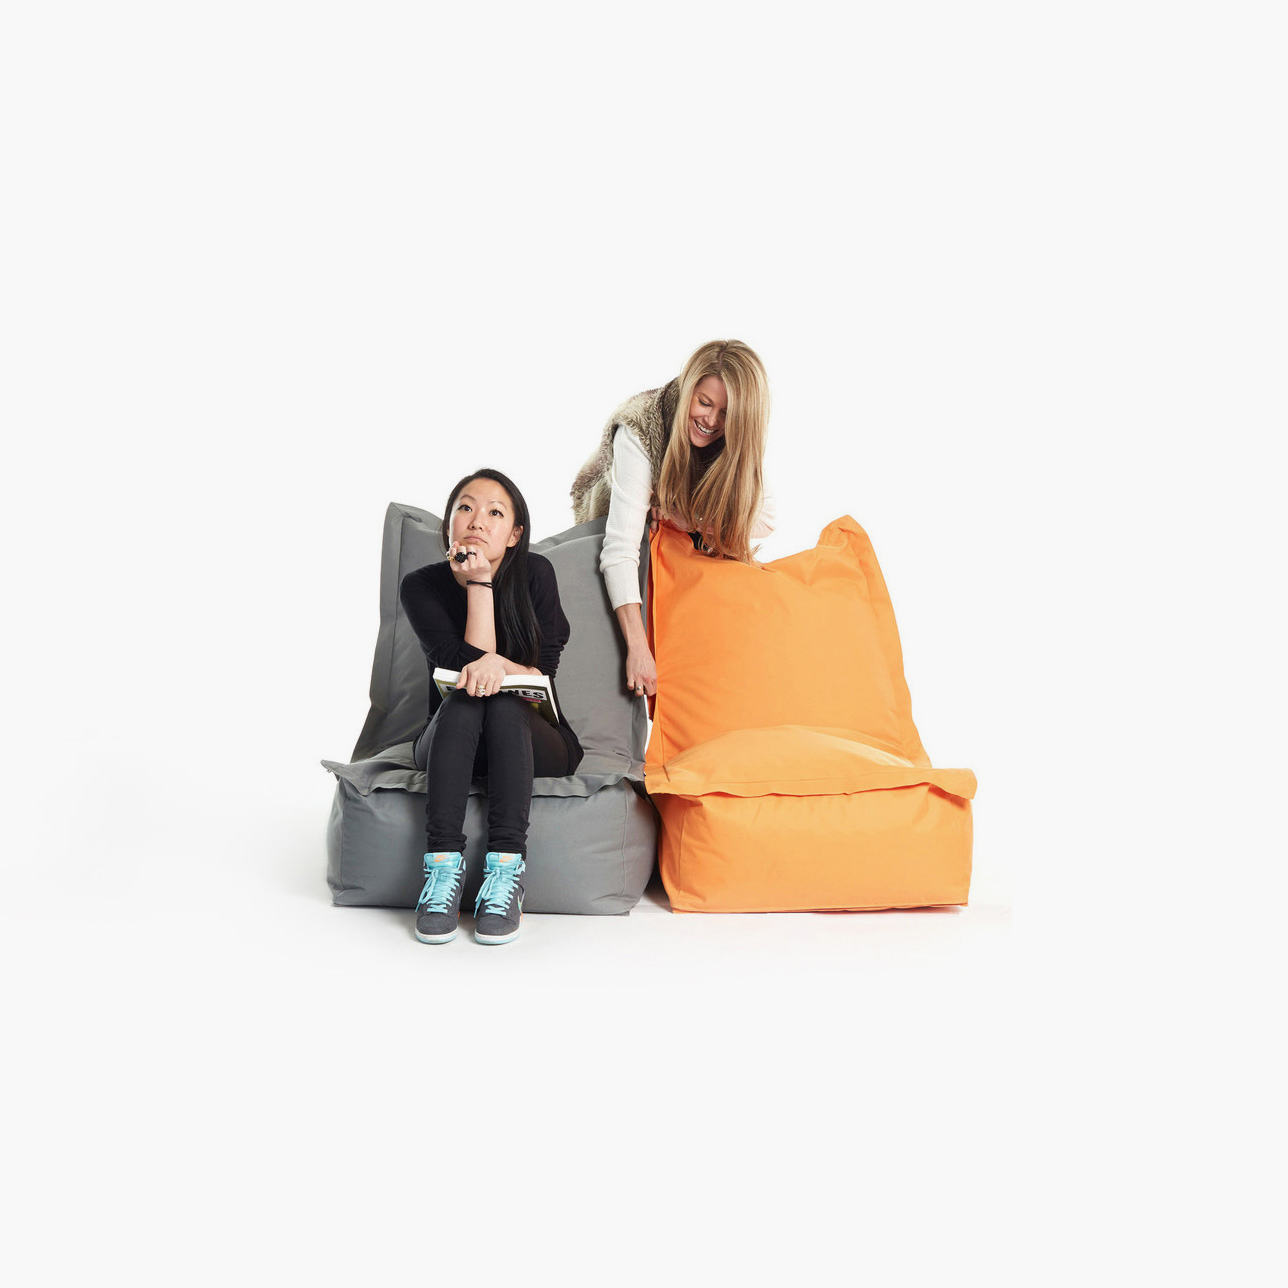 Link Chair   Client: Fab 2014  This beanbag chair was designed to be more than just a staple in a kid's playroom; Clabots approached this design as he would any other chair. It boasted an upright, ergonomic silhouette that was chic enough for a living room while retaining the sink-into-it quality that makes bean bags so popular. It also could connect with two others for a full sofa.